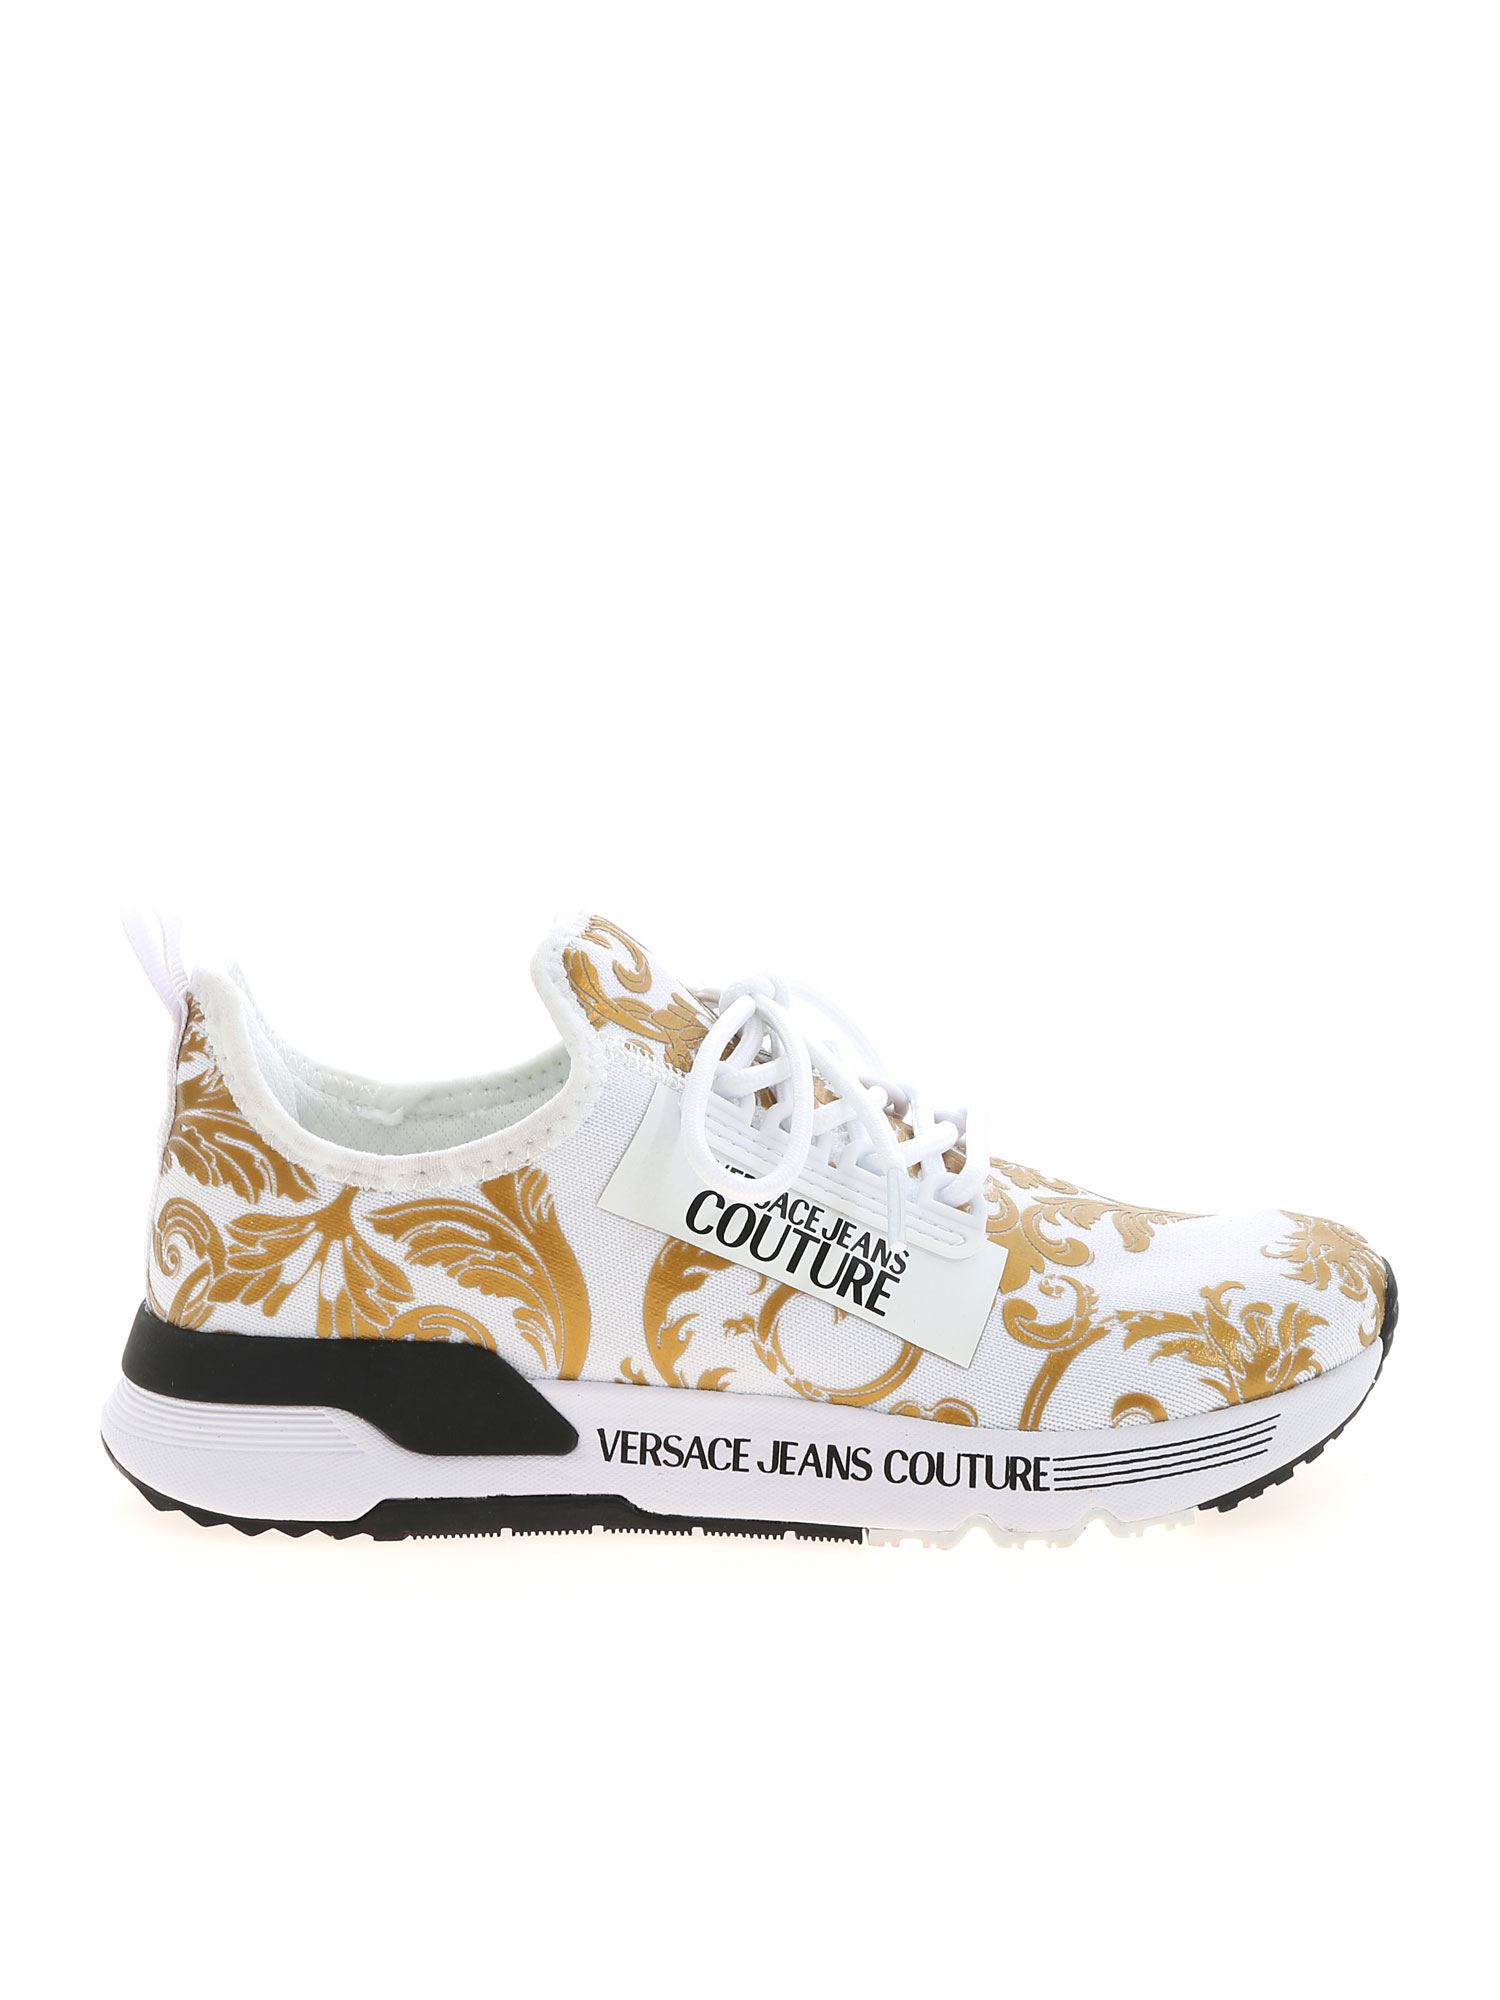 Versace Jeans Couture Sneakers BAROQUE LOGO SNEAKERS IN WHITE